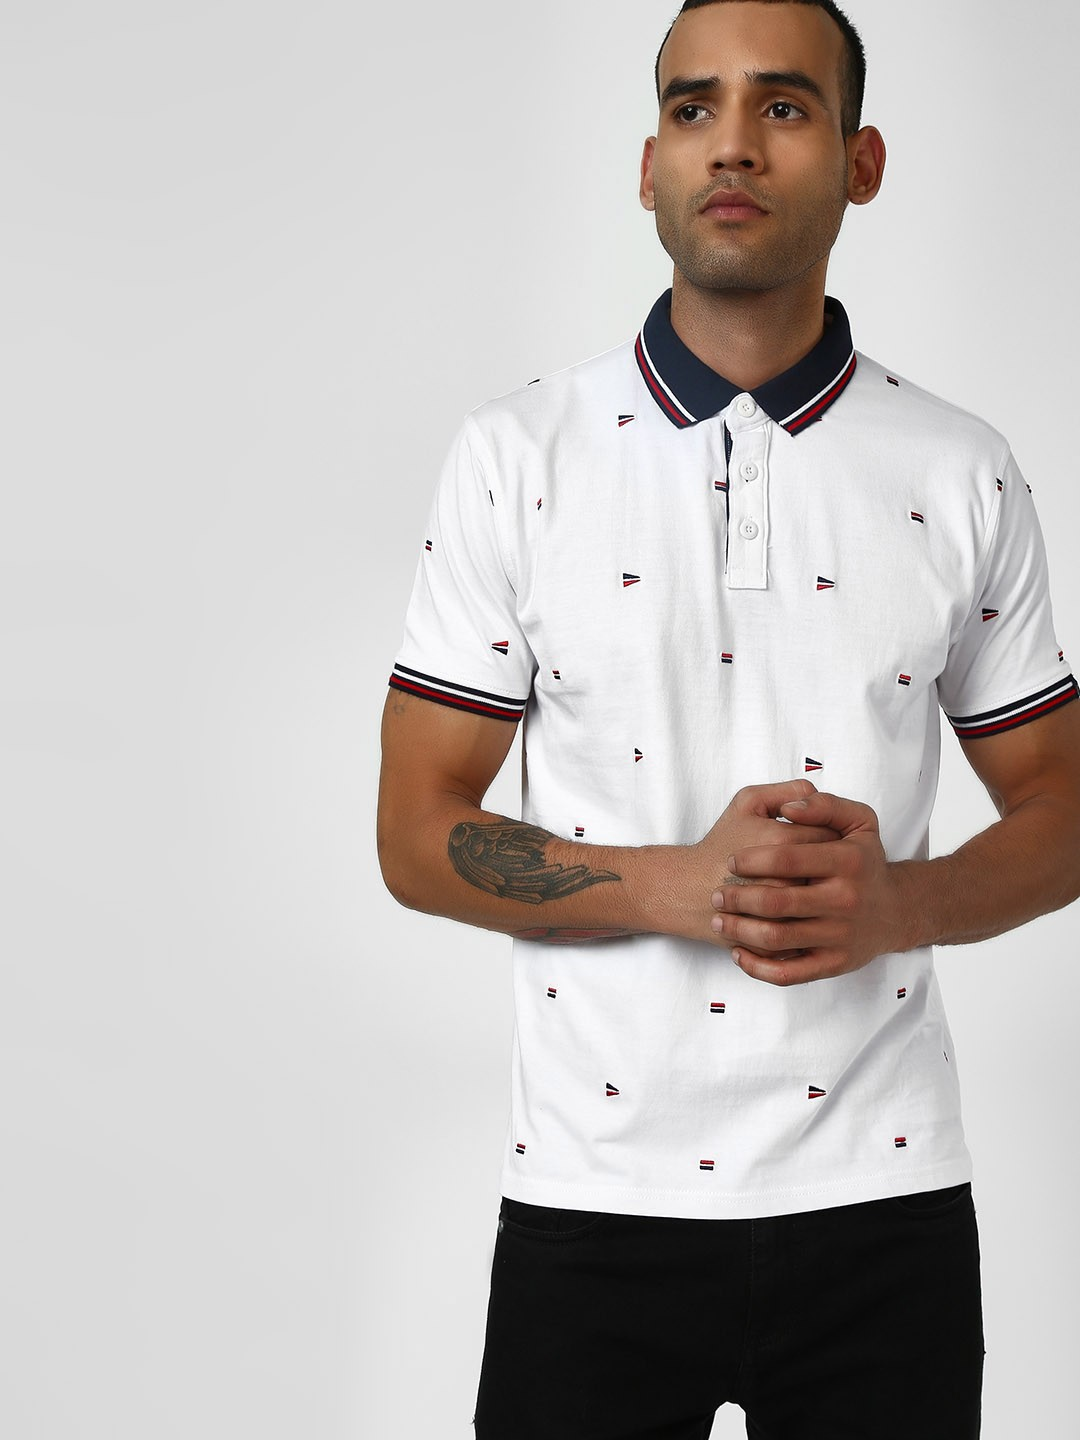 SCULLERS White All Over Print Polo T-Shirt 1